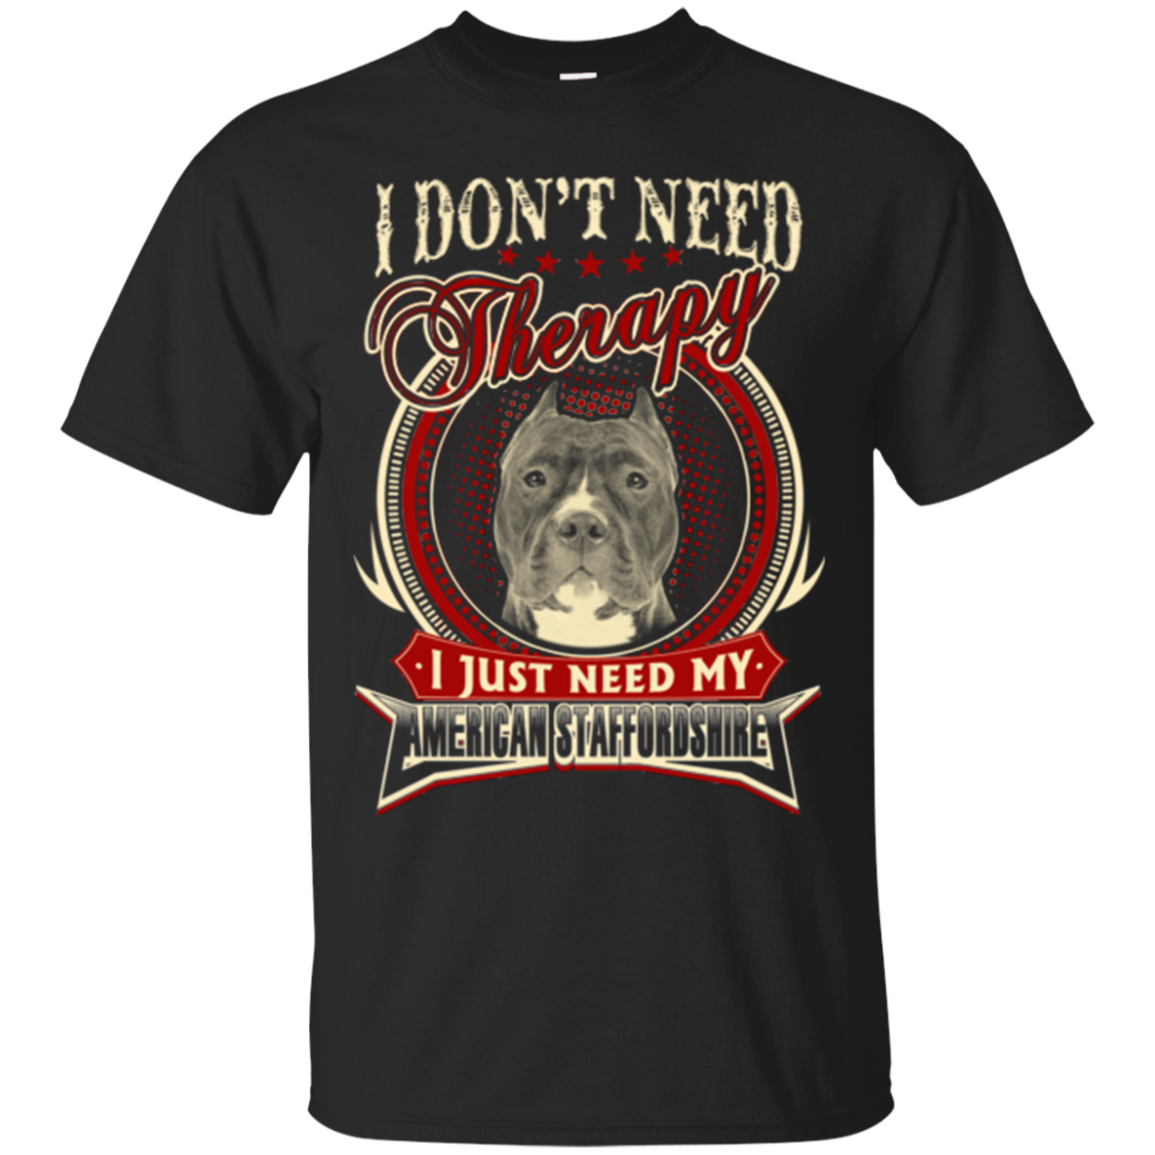 American Starffordshire Shirts Don't Need Therapy Just Need My American Staffordshire